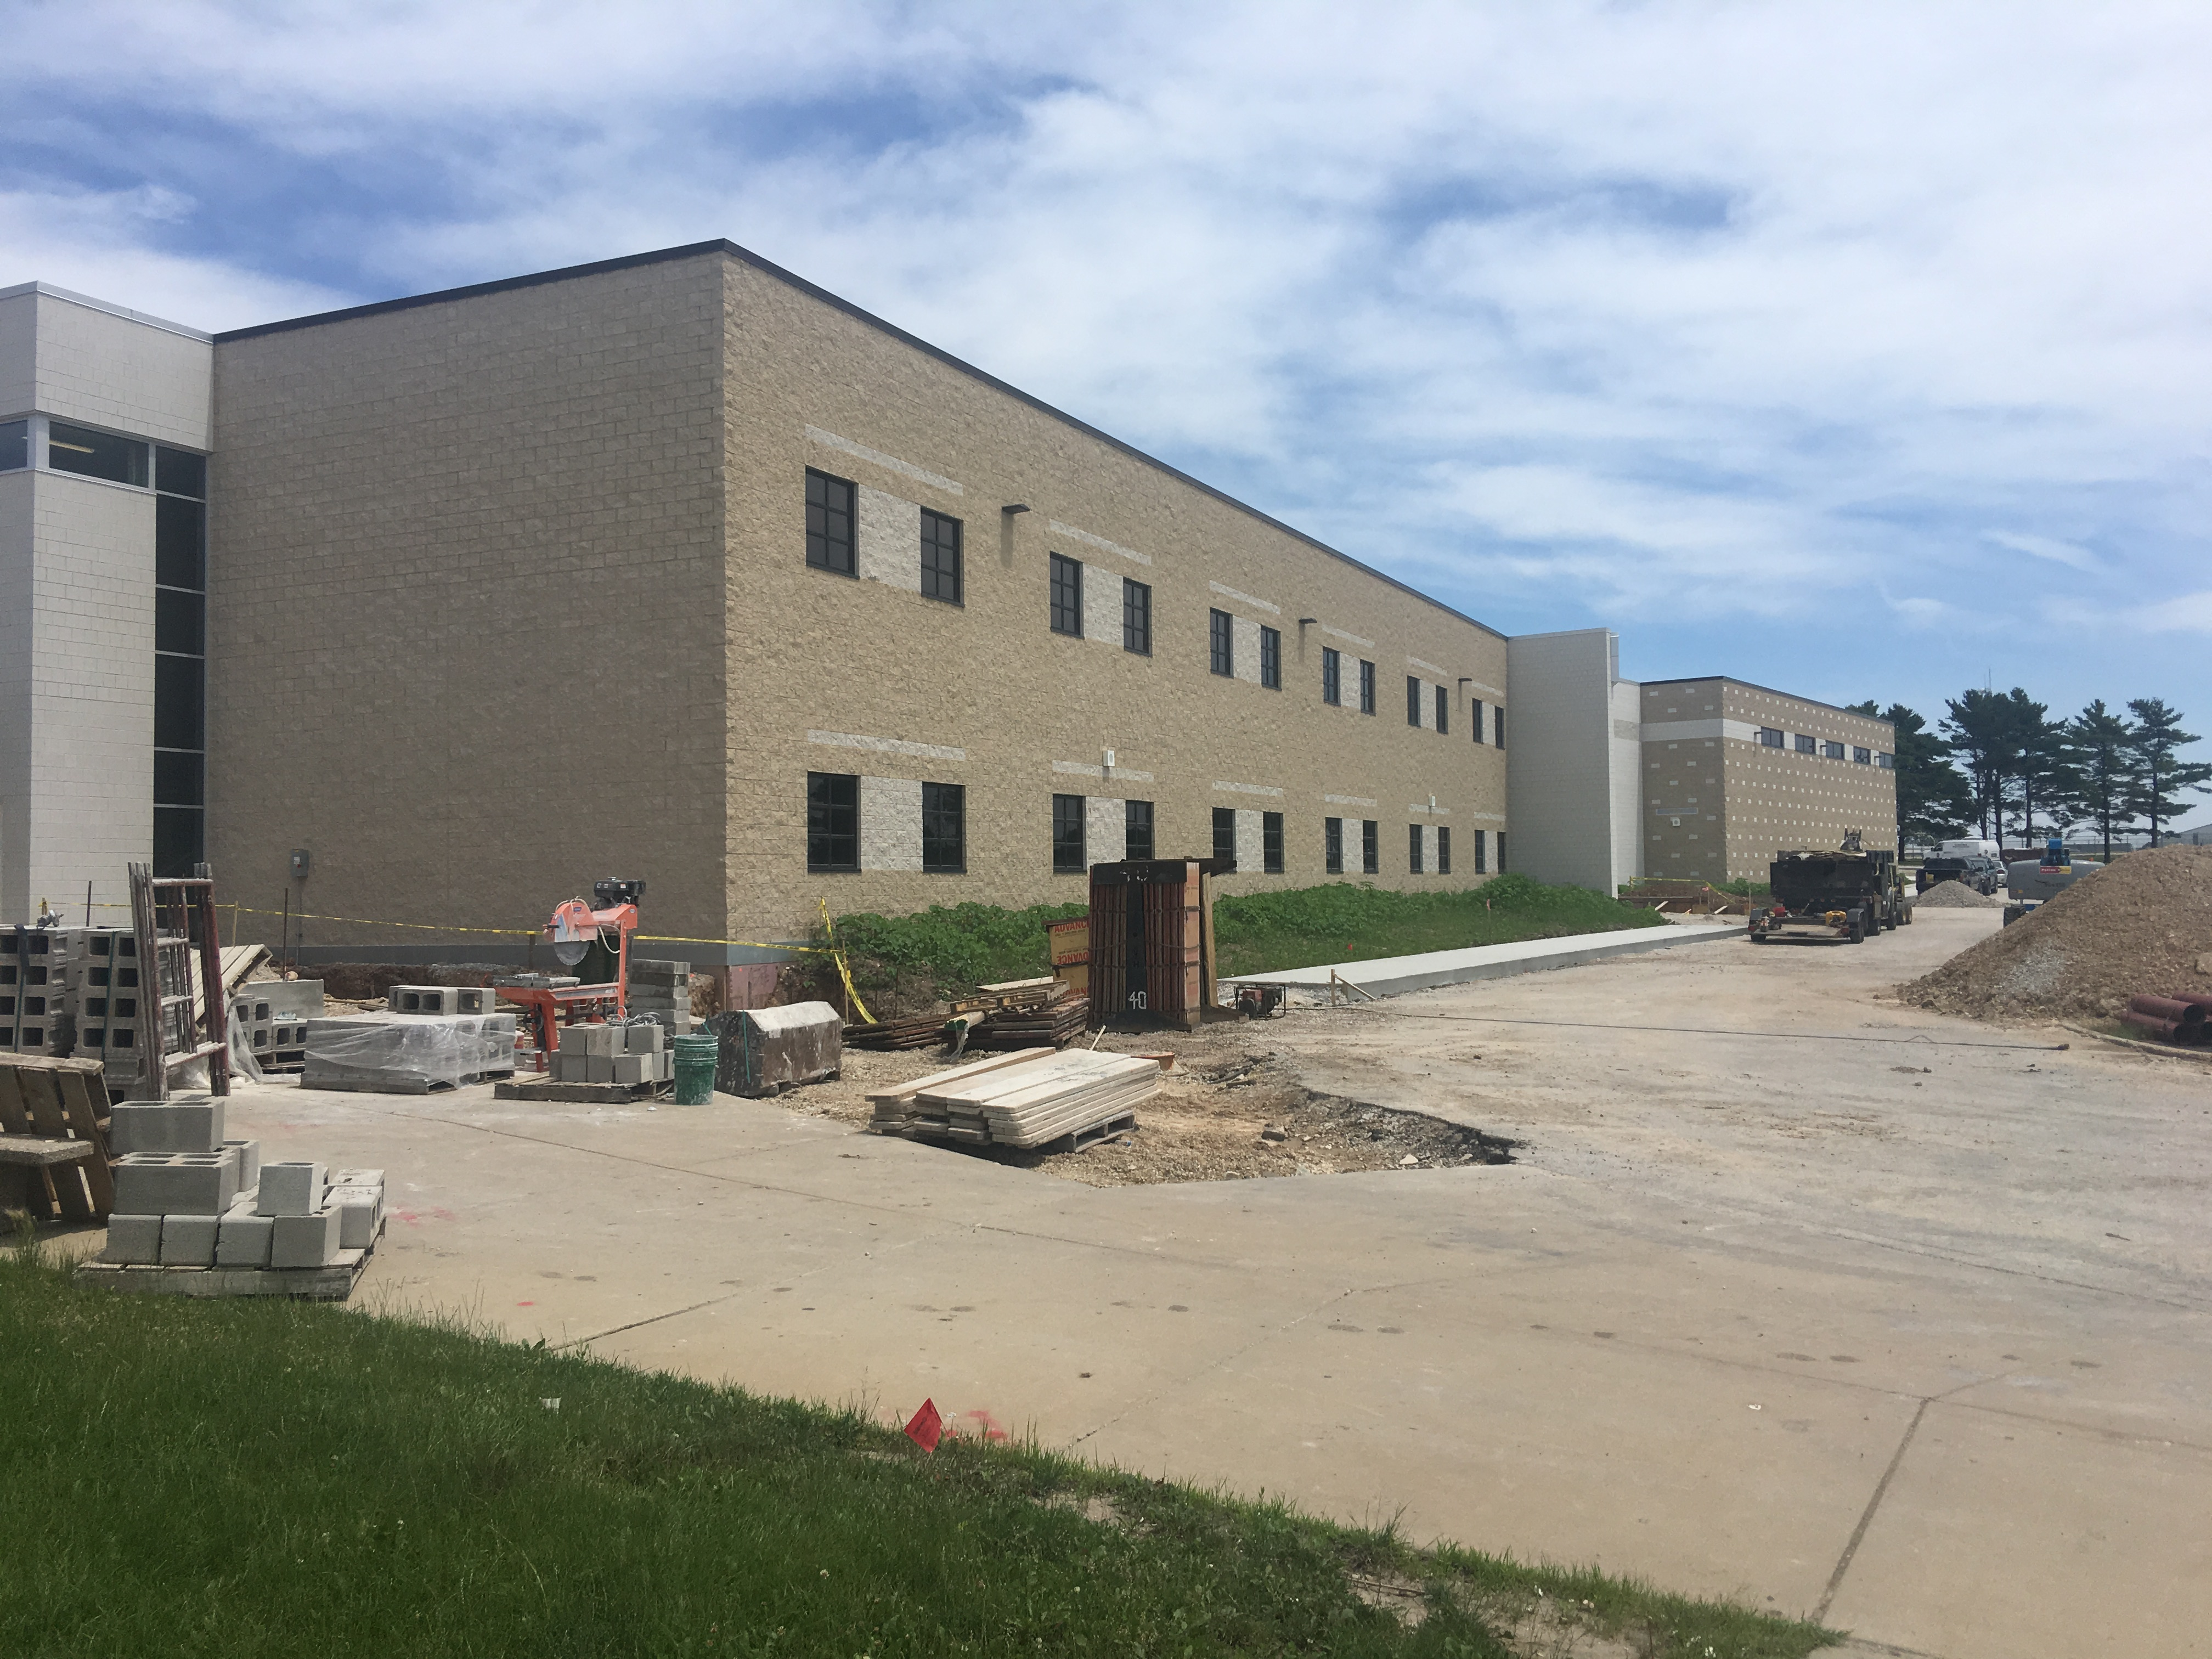 New construction - South side of CHS